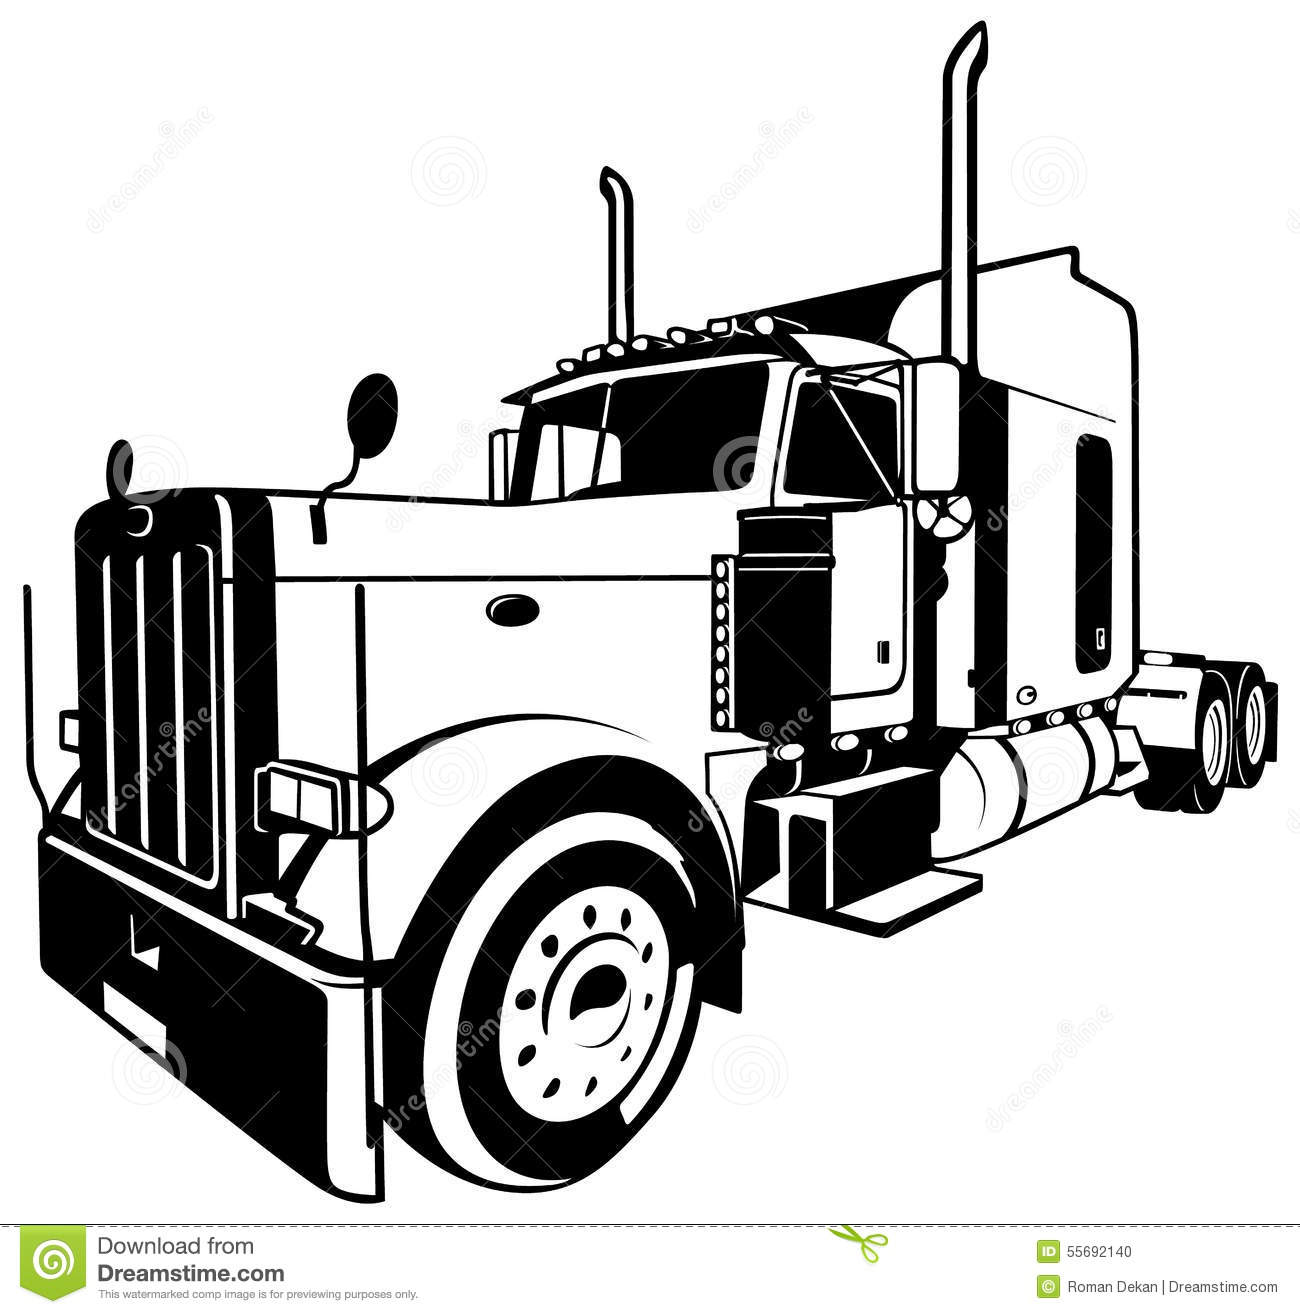 Stock Illustration American Truck Black Outlined Illustration Vector Image55692140 on kenworth big rig truck